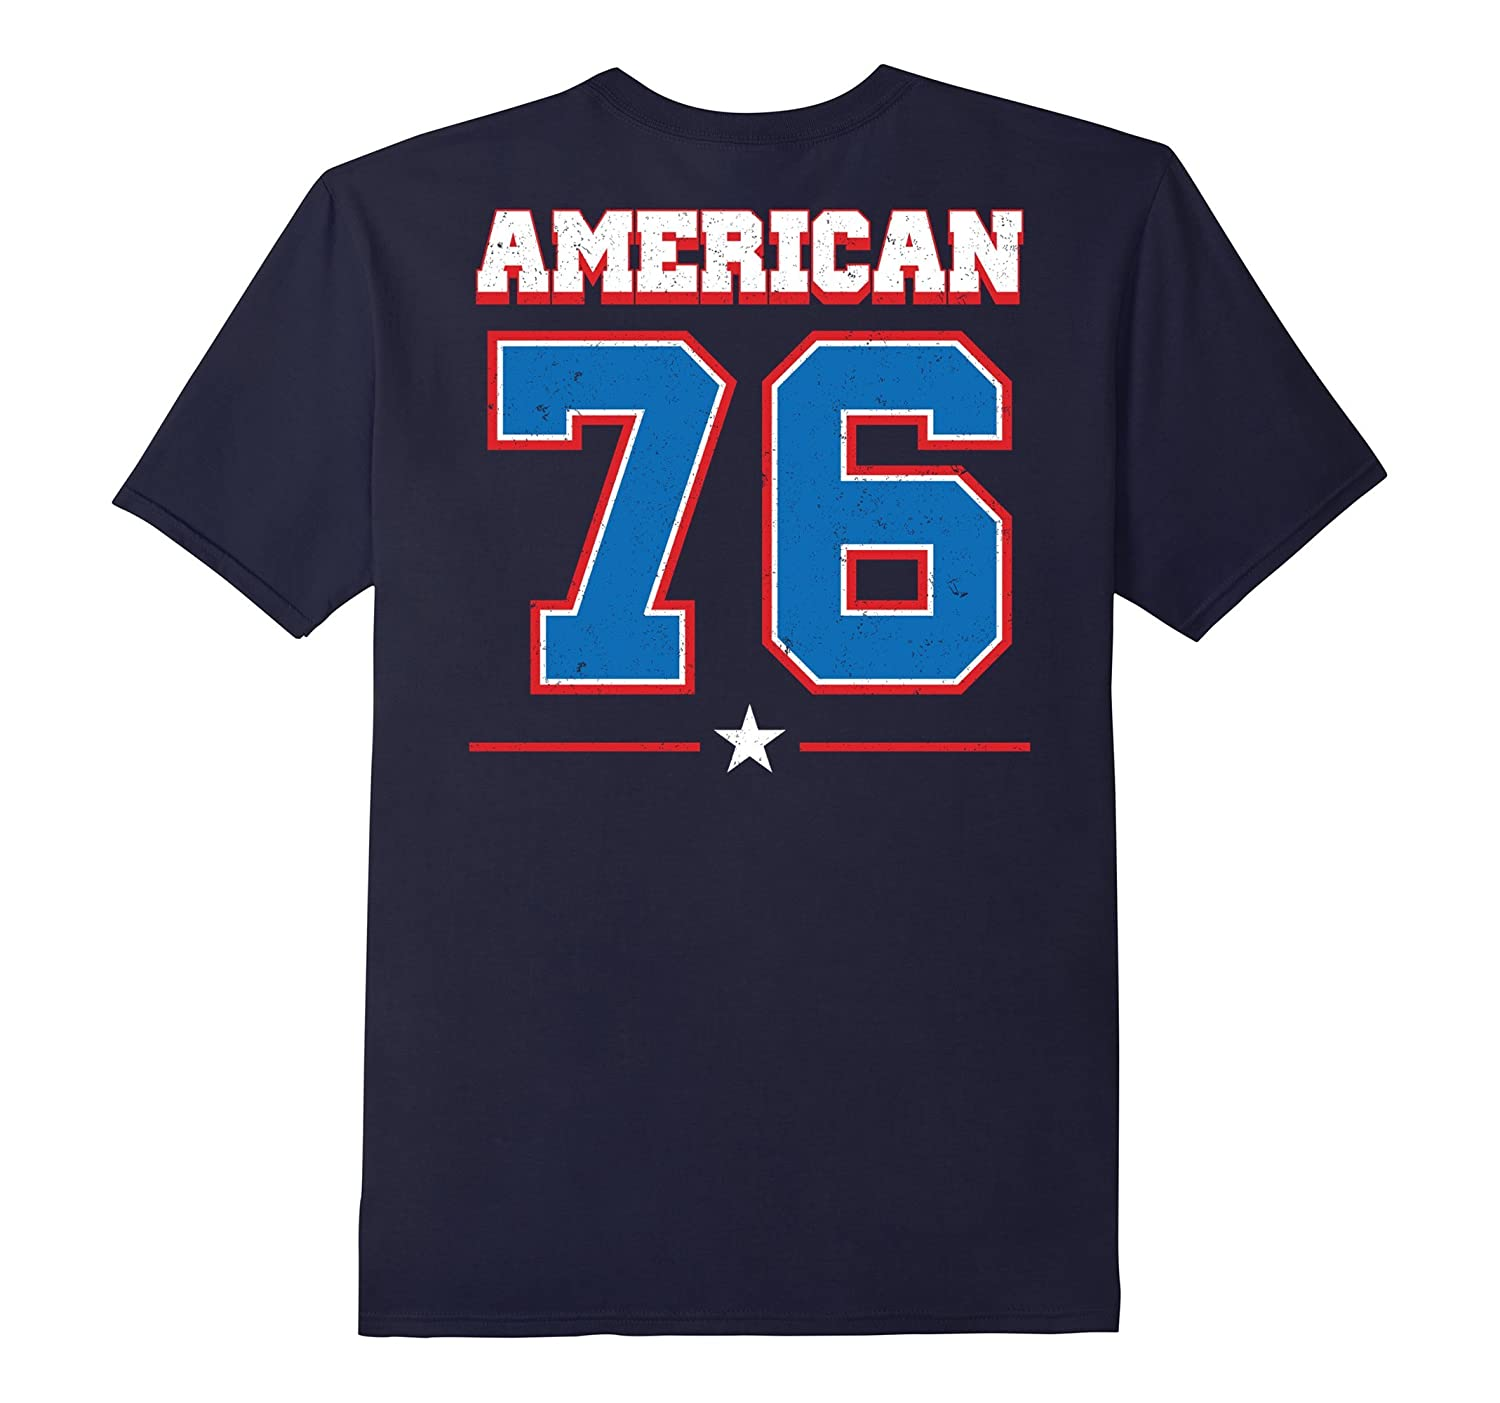 USA 1776 Proud American Shirt-Vaci